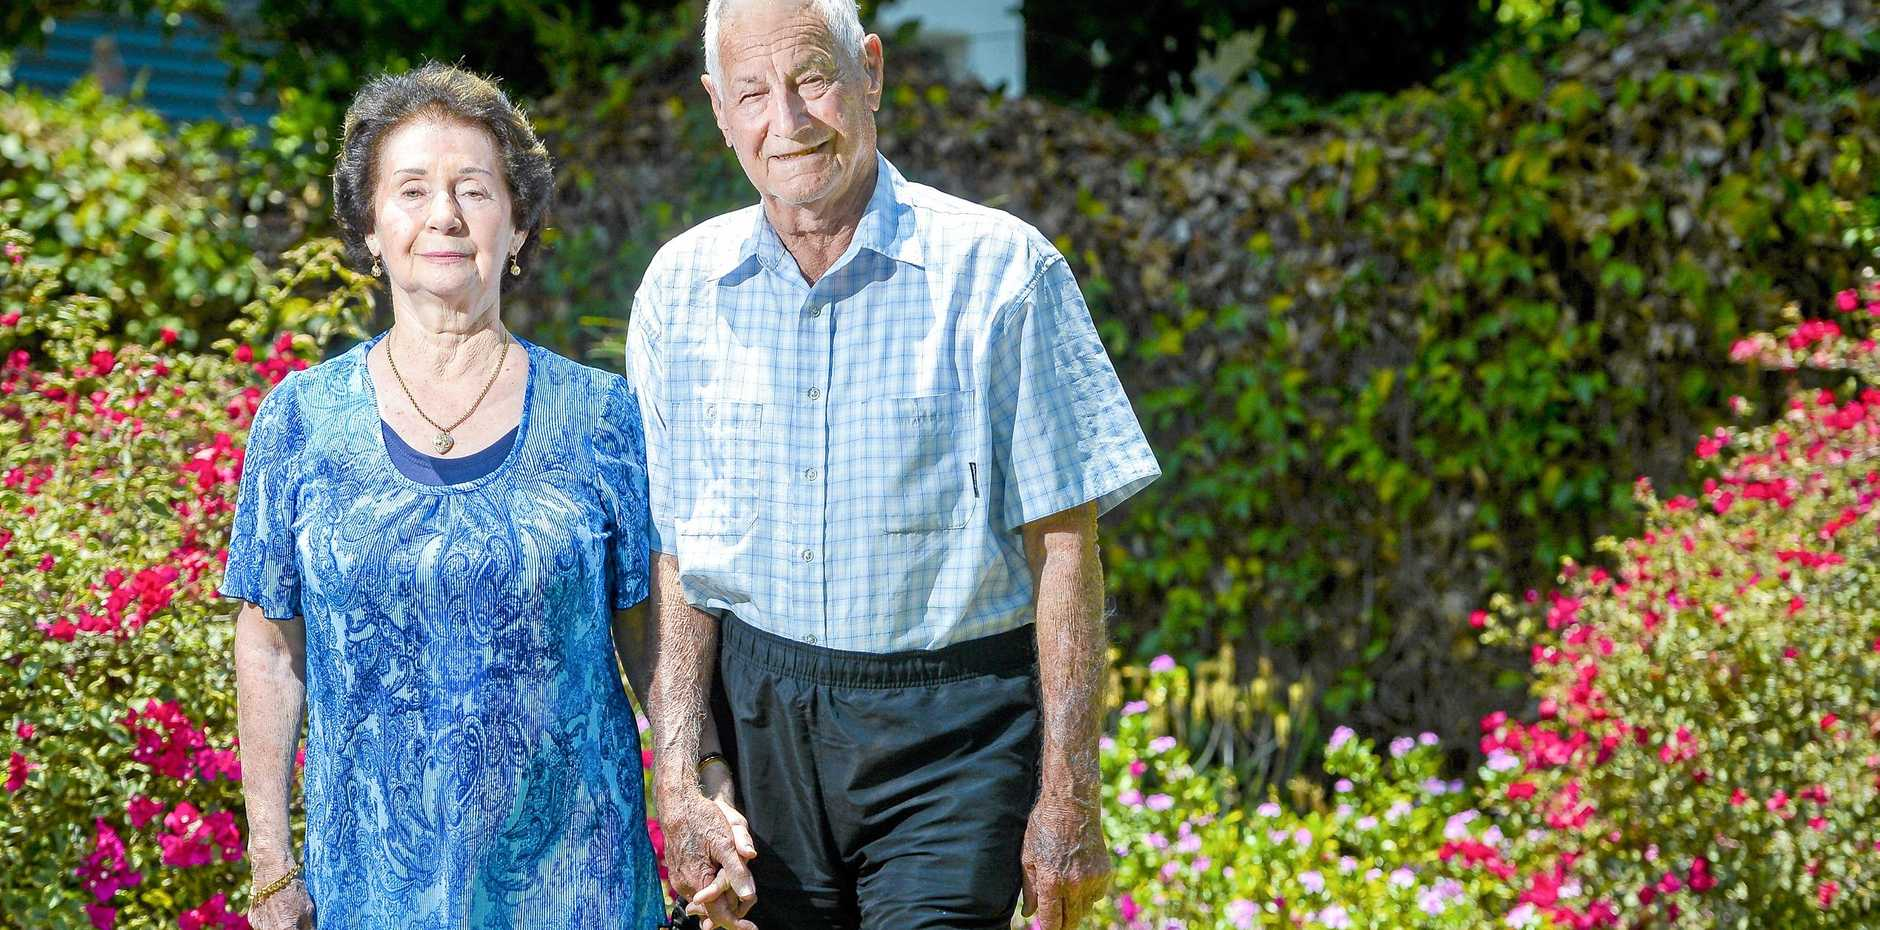 PROUD COUPLE: Gladstone couple Carmel and Errol Hausheer celebrated their 60th wedding anniversary on October 11, 2018.